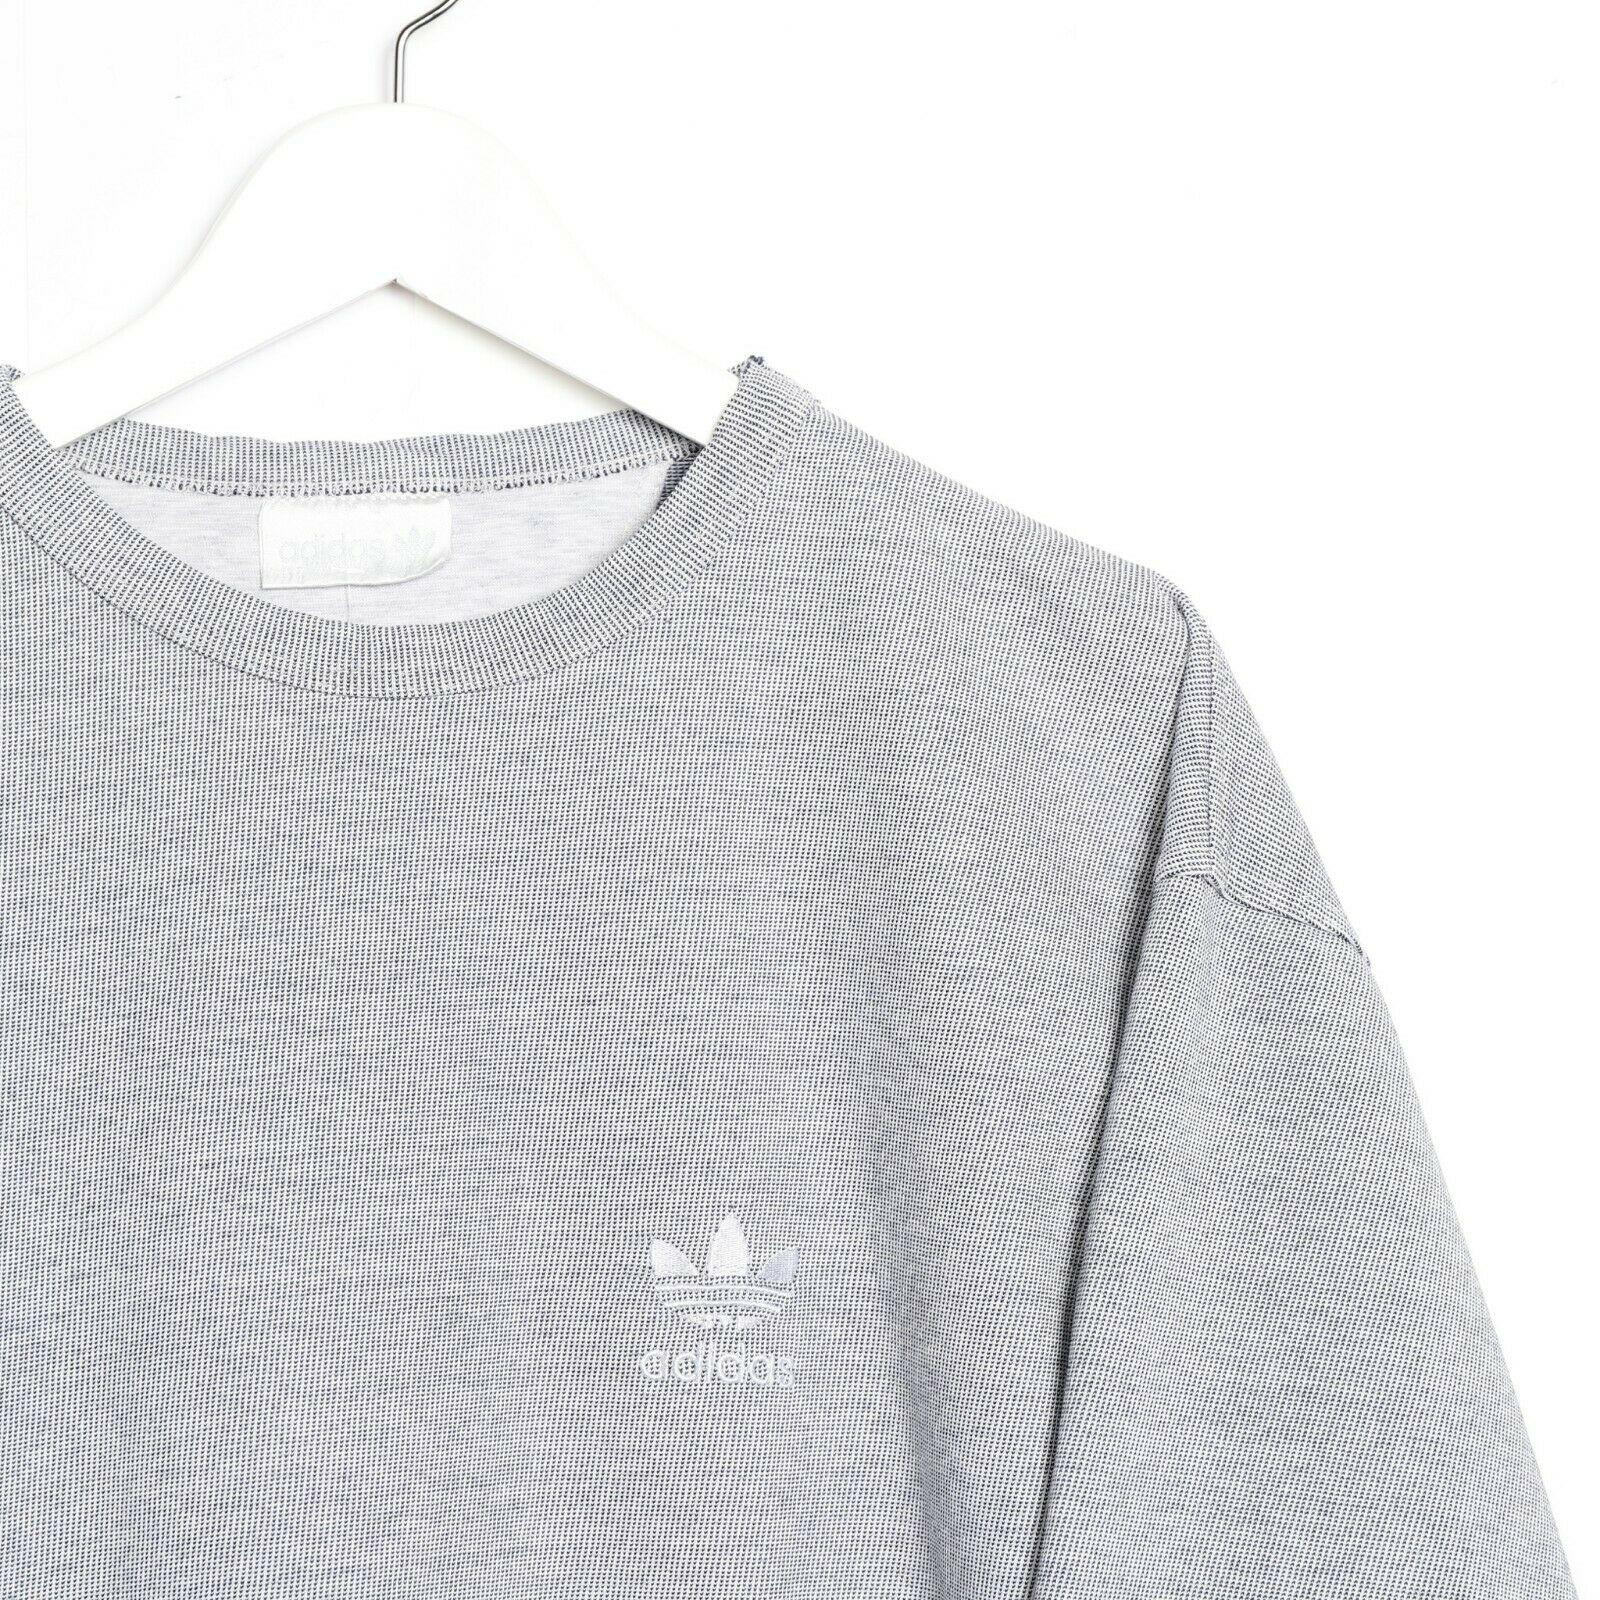 Vintage 80s ADIDAS Small Logo Sweatshirt Jumper Grey Medium M